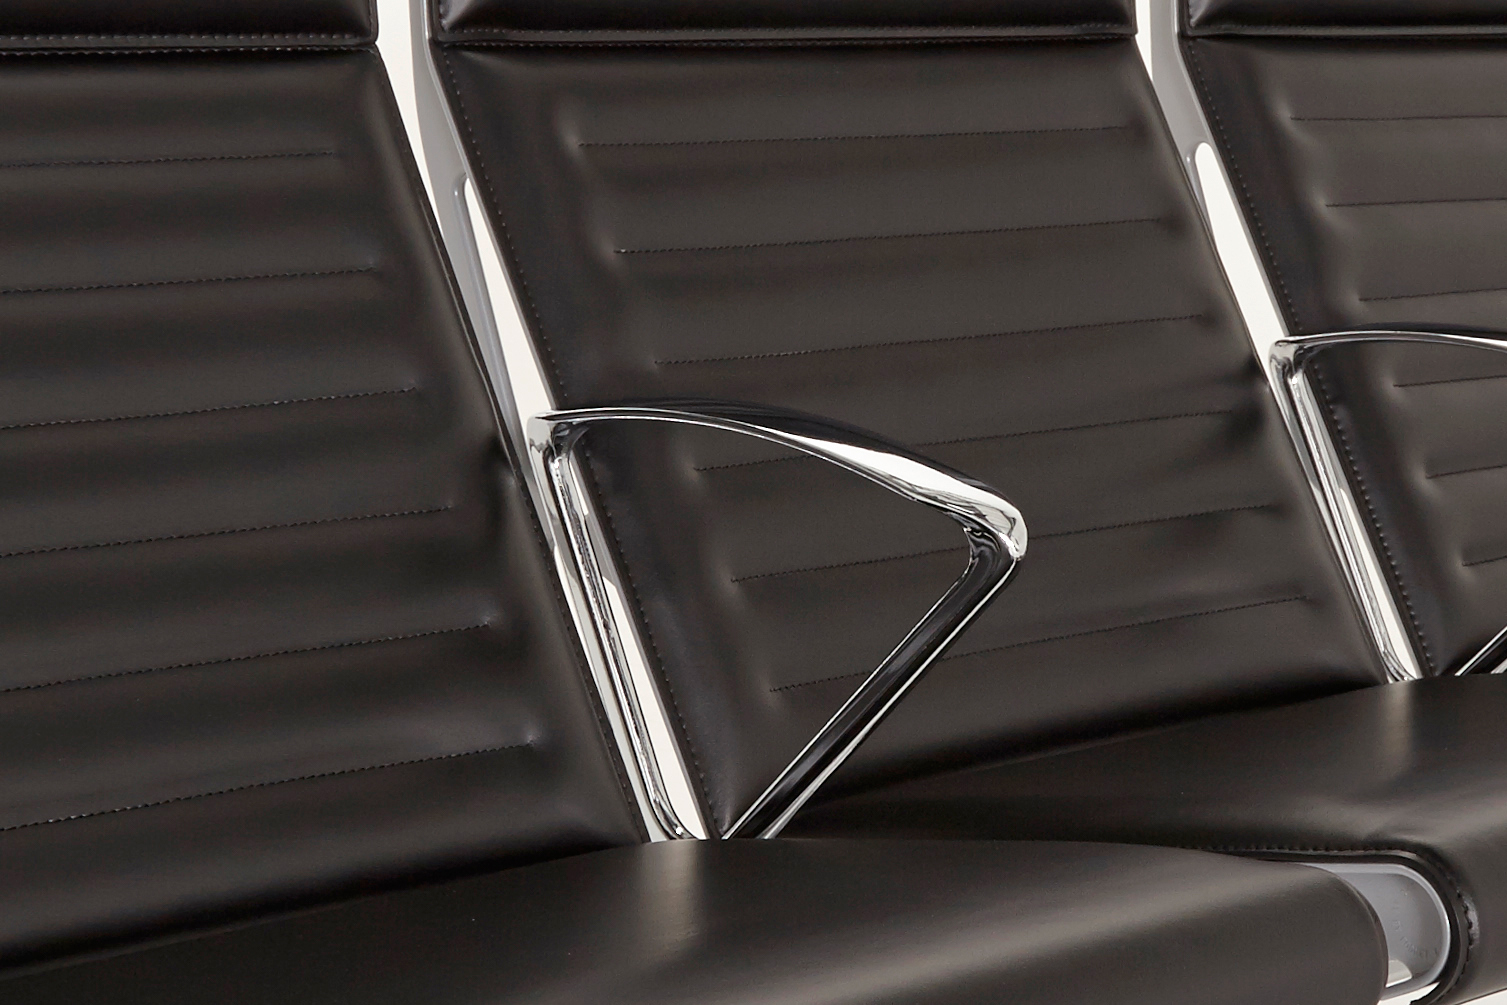 omk trax seat detail